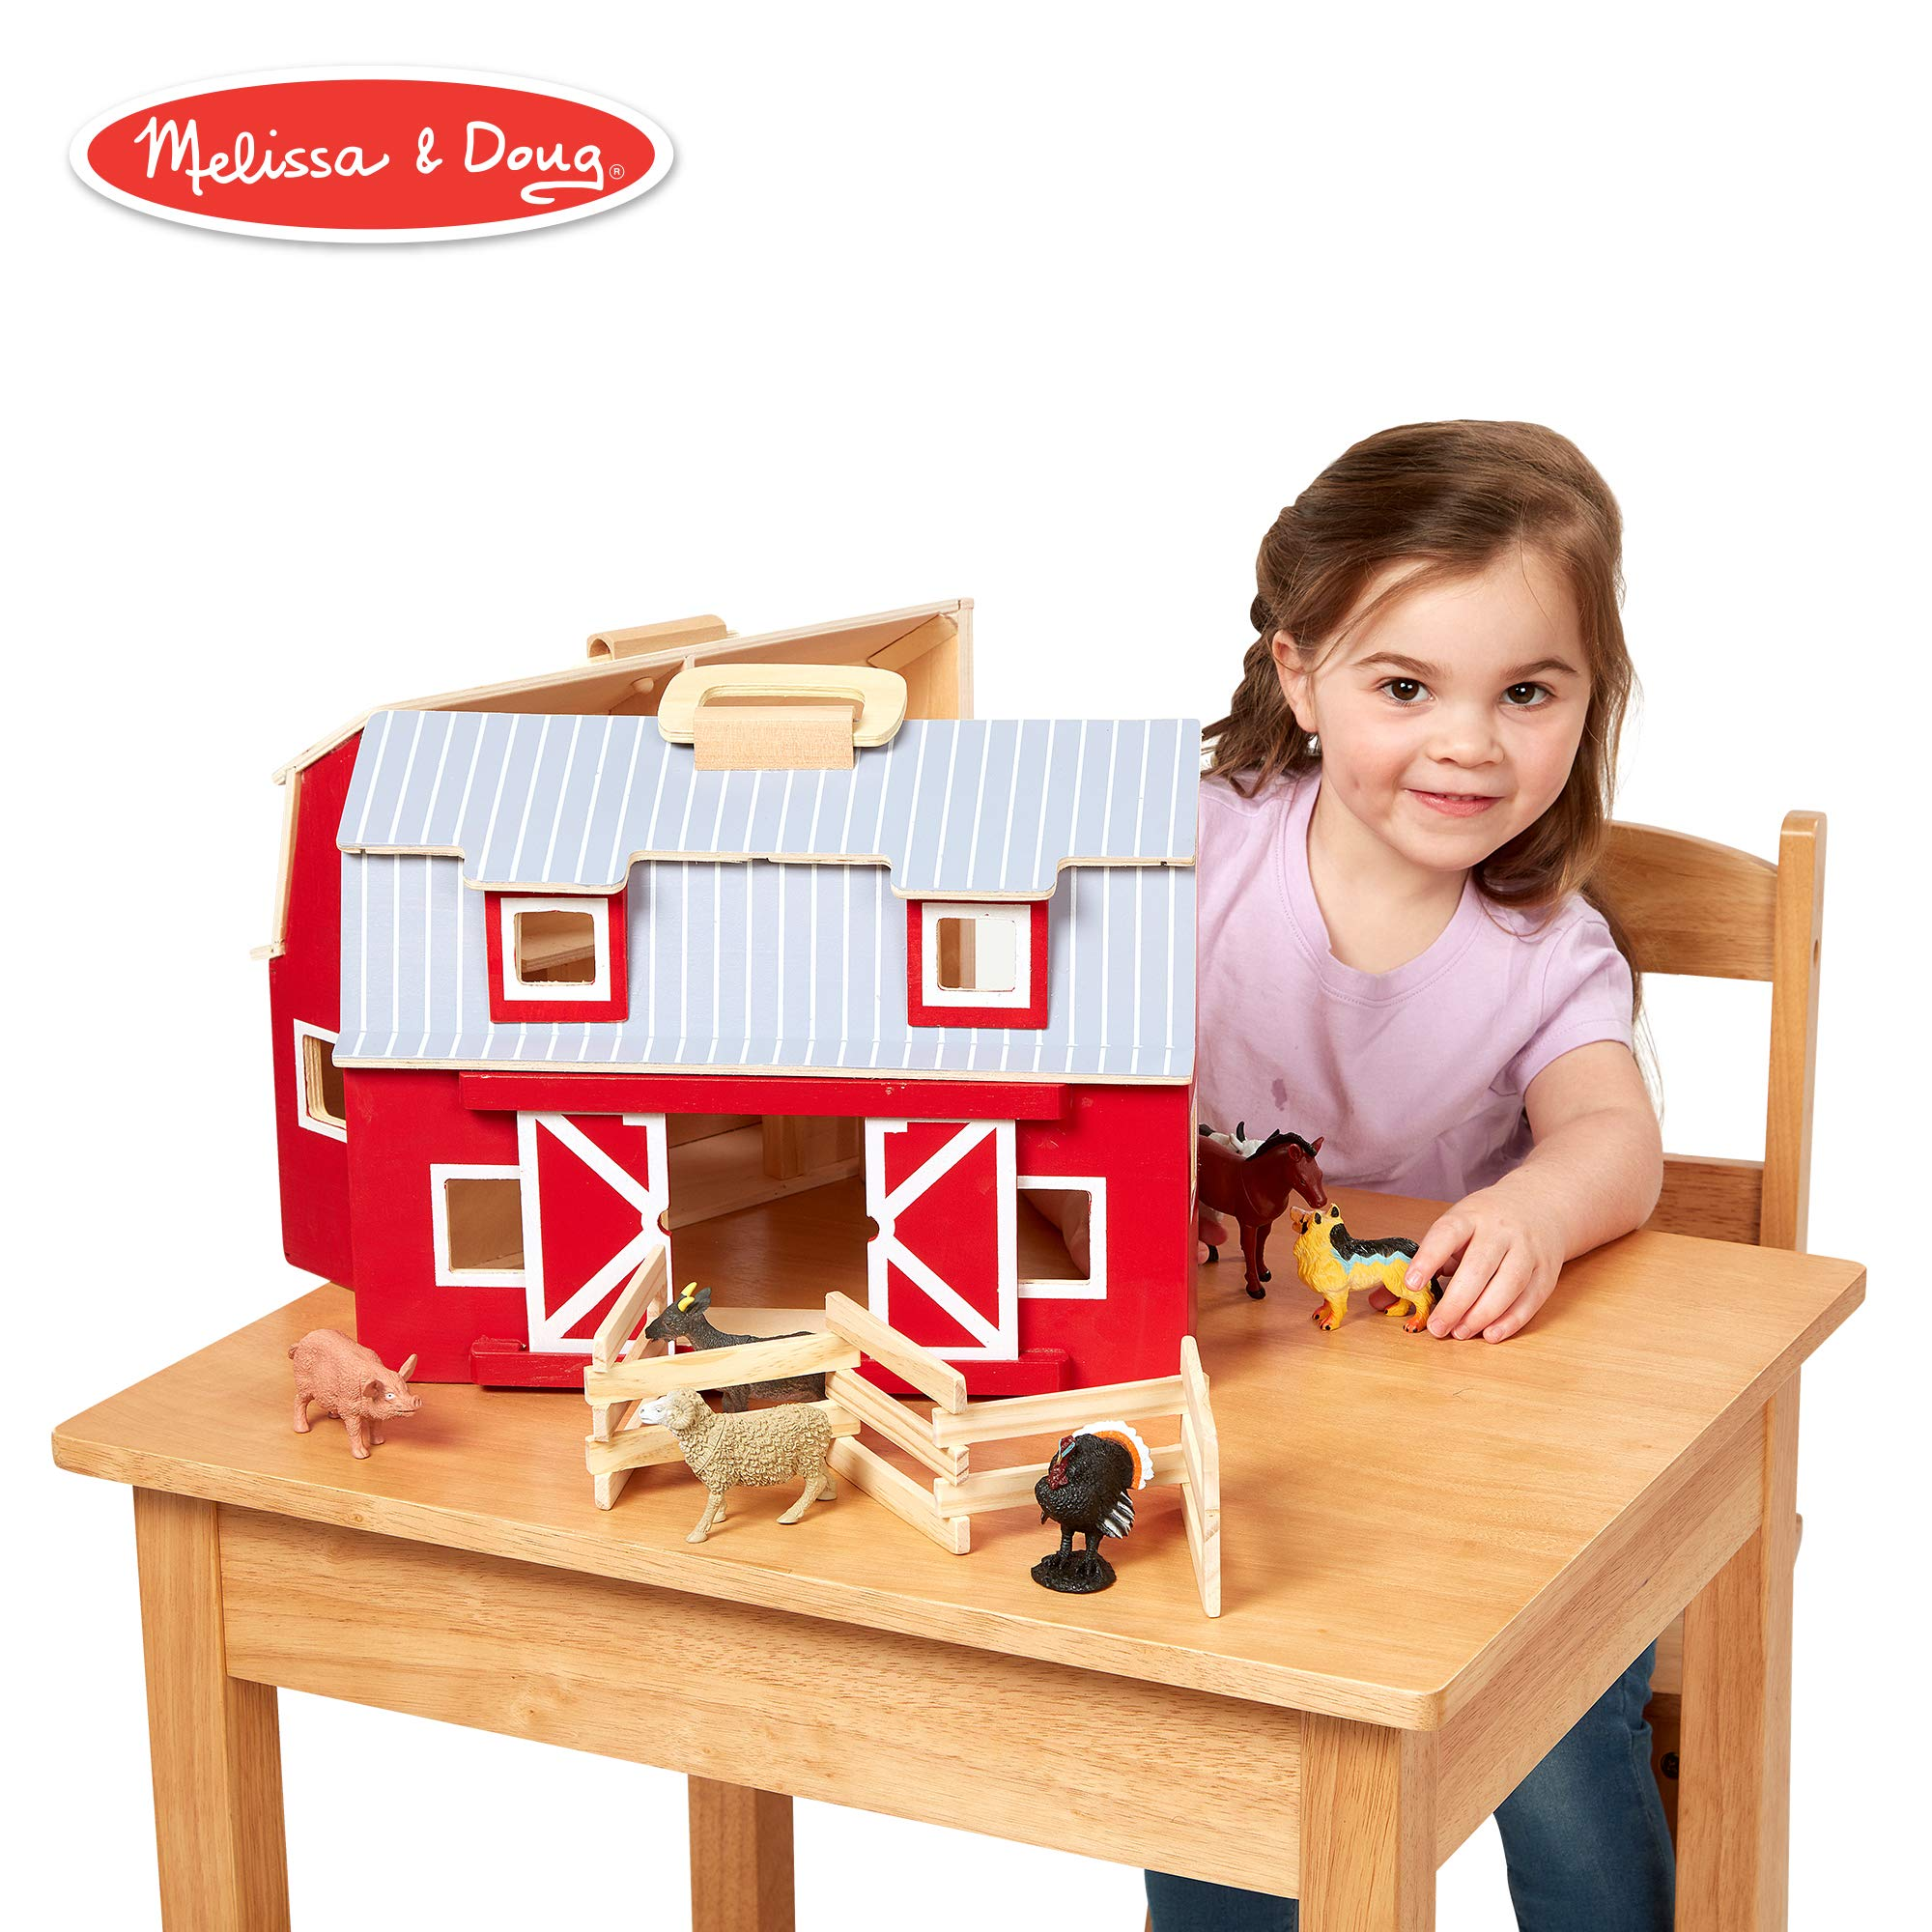 Melissa & Doug Wooden Fold & Go Barn, Animal & People Play Set, Promotes Imaginative Play, 7 Animal Play Figures, 11.25'' H x 13.5'' W x 4.7'' L